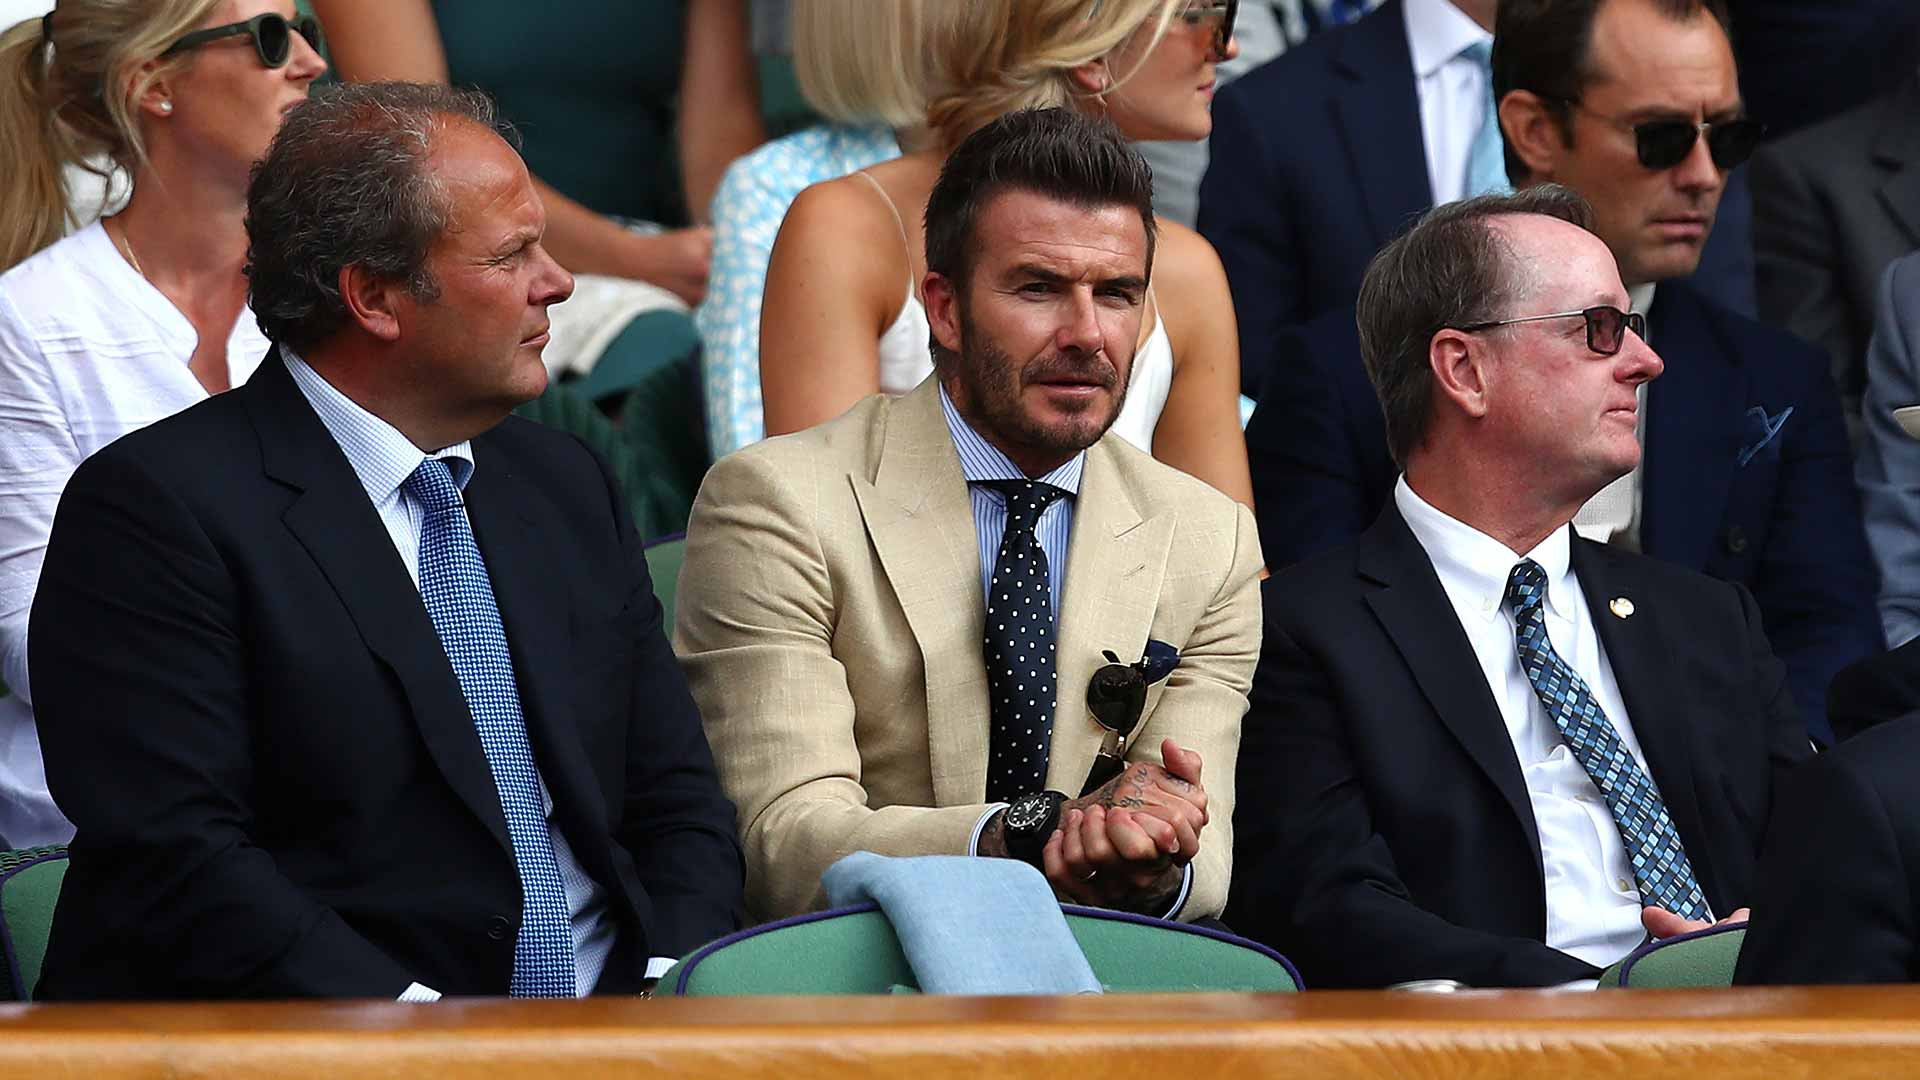 David Beckham watches the semi-final match between Roger Federer and Rafael Nadal at Wimbledon